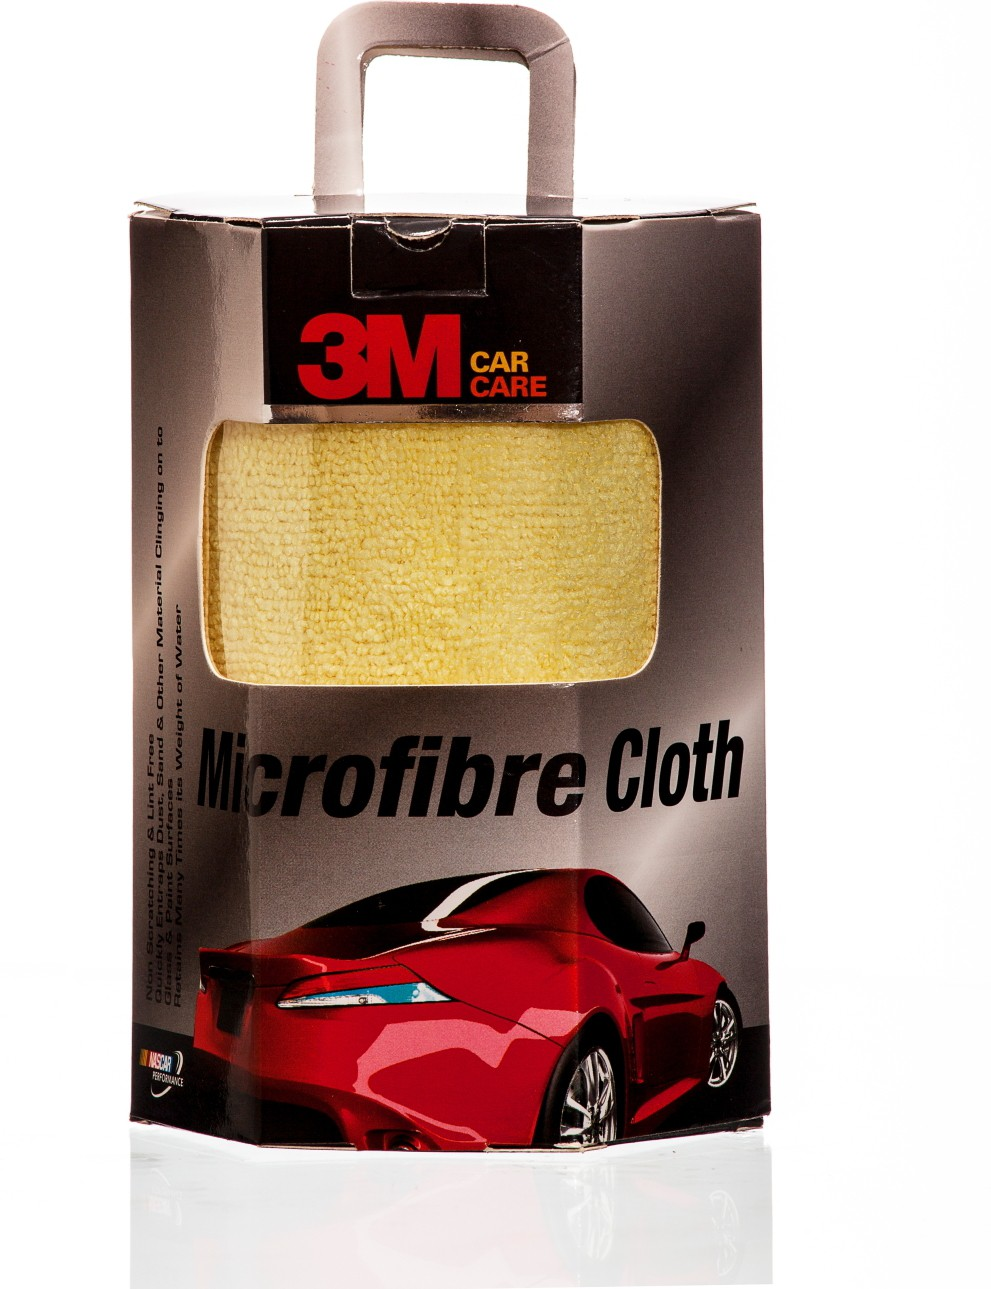 Deals | From 3M Vehicle Washing Cloth, Liquid & more